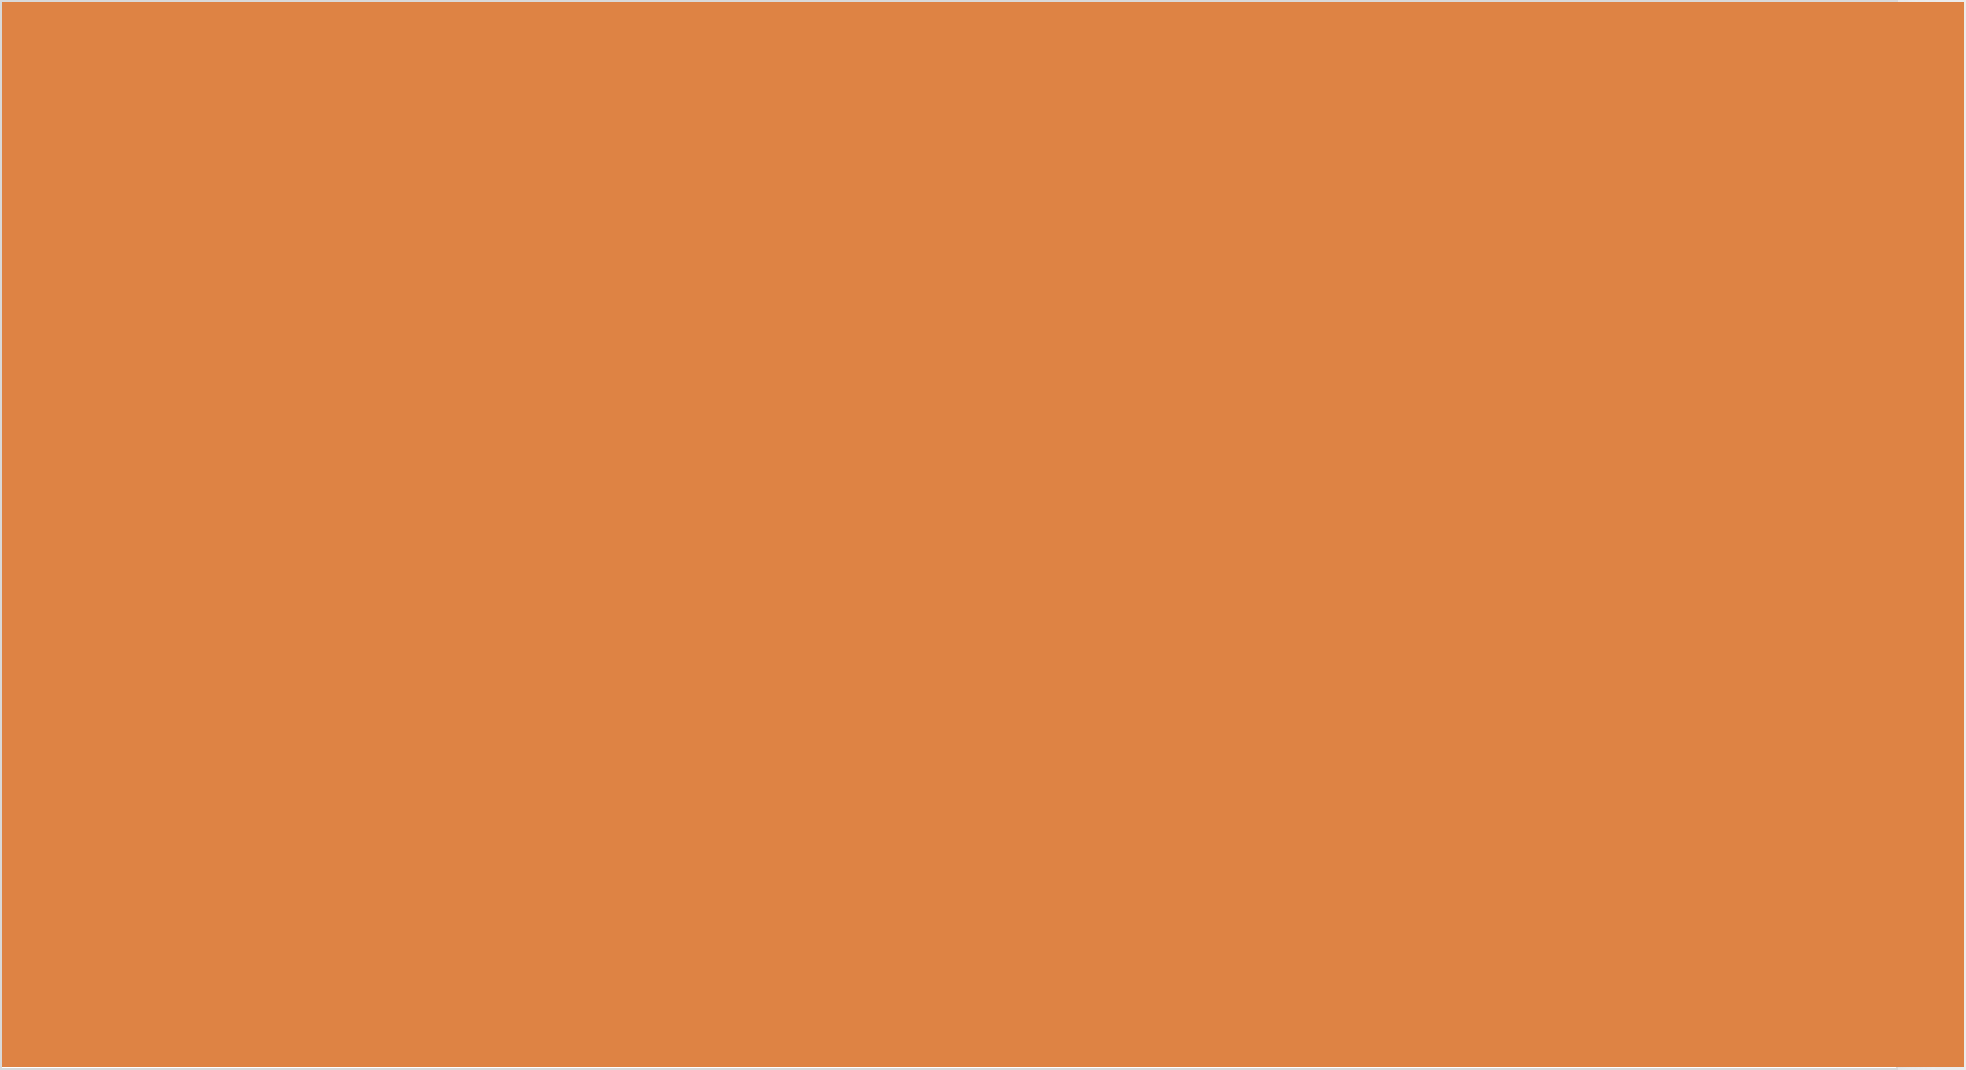 CA Foundation Principles and Practice of Accounting May 2022 | Mobile App cover